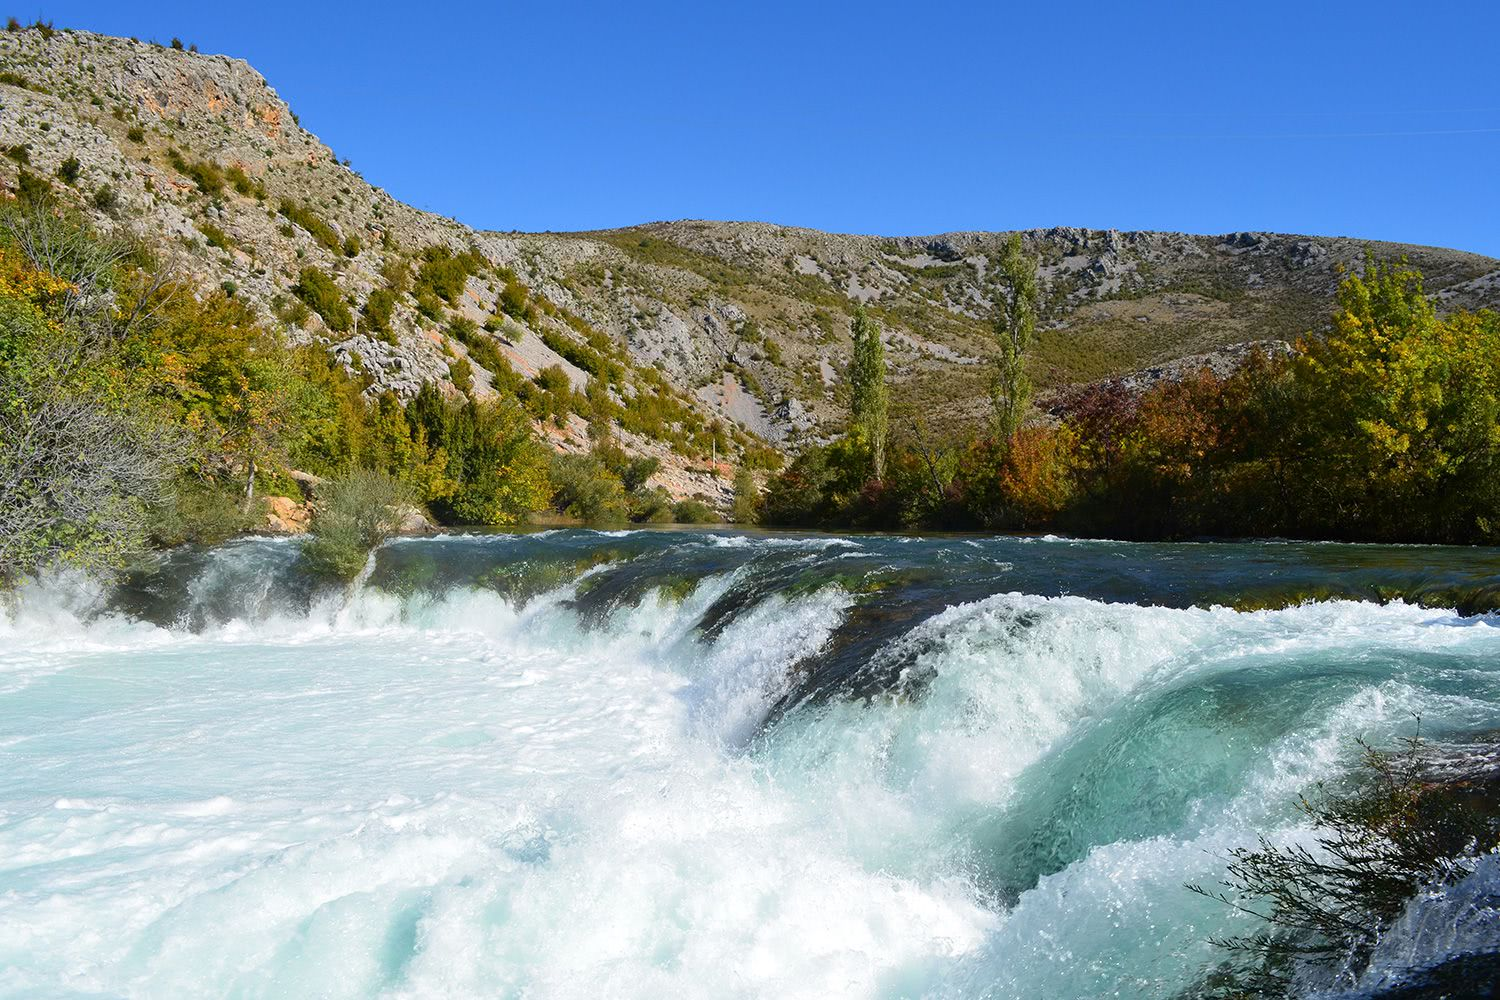 Ogar Waterfall Kayaking Zrmanja River, Croatia